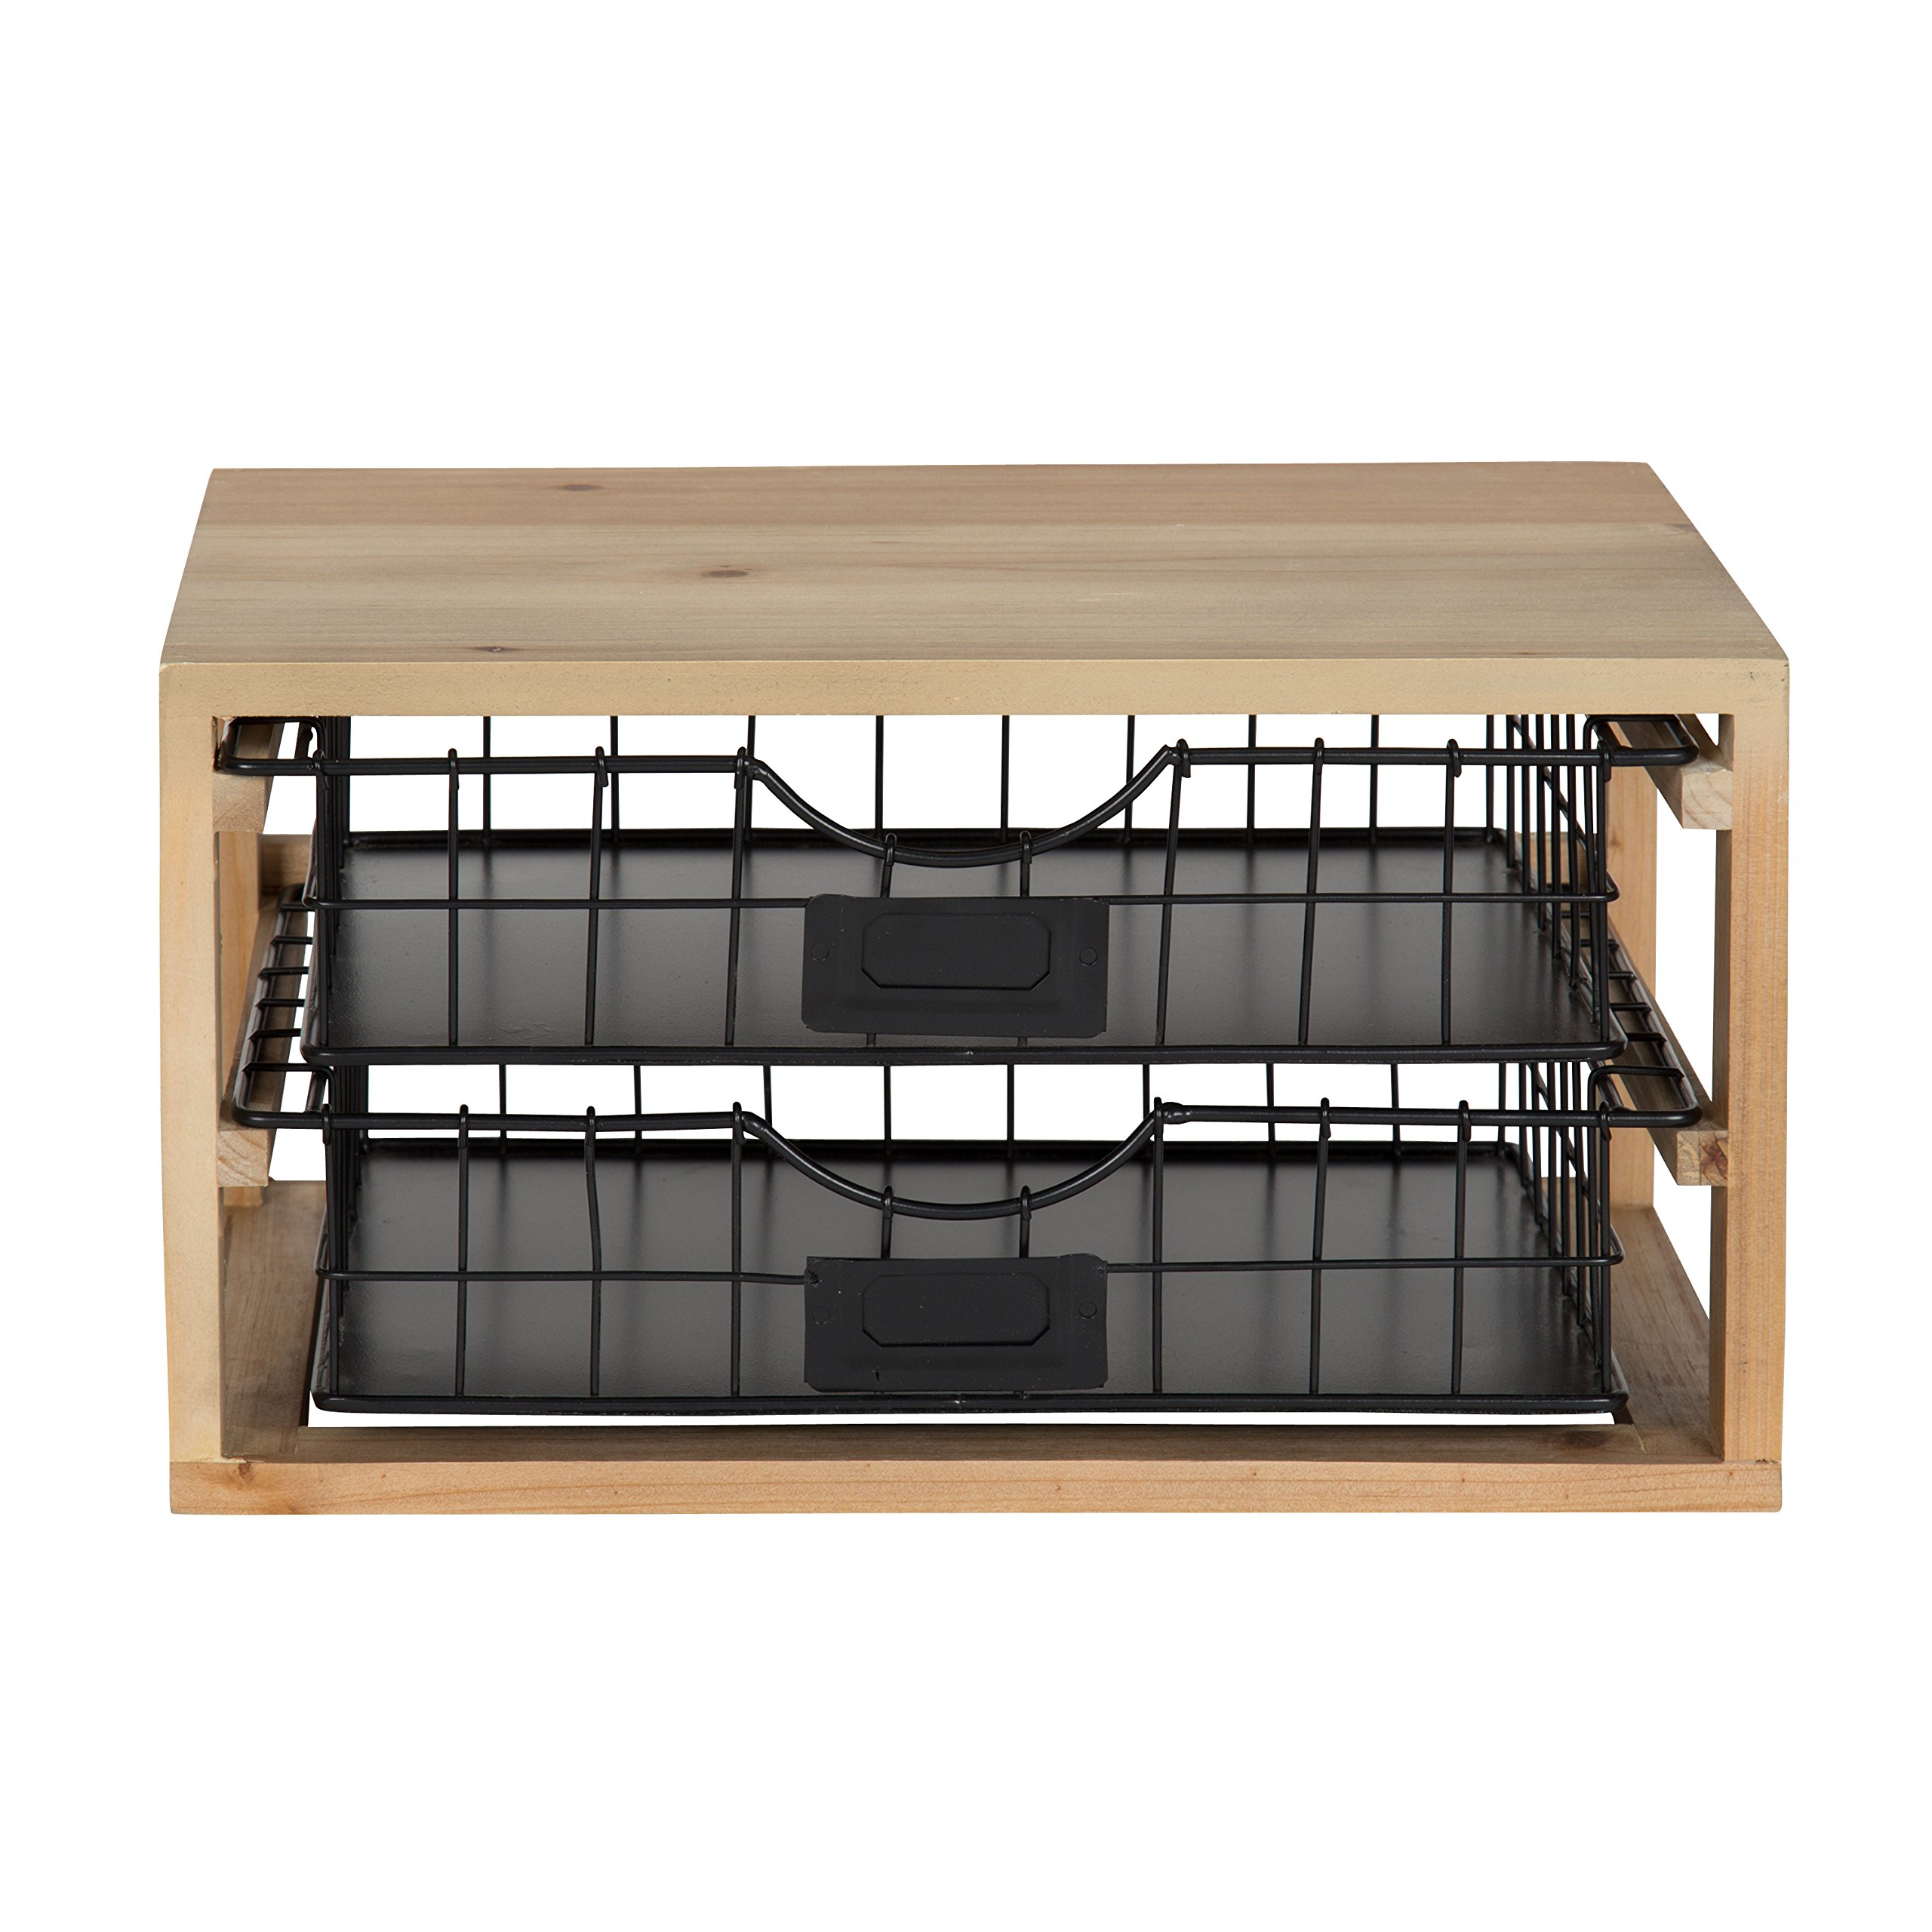 Kate and Laurel Tanner Rustic Wood and Metal Desktop Drawer Organizer Letter Tray by Kate and Laurel (Image #2)